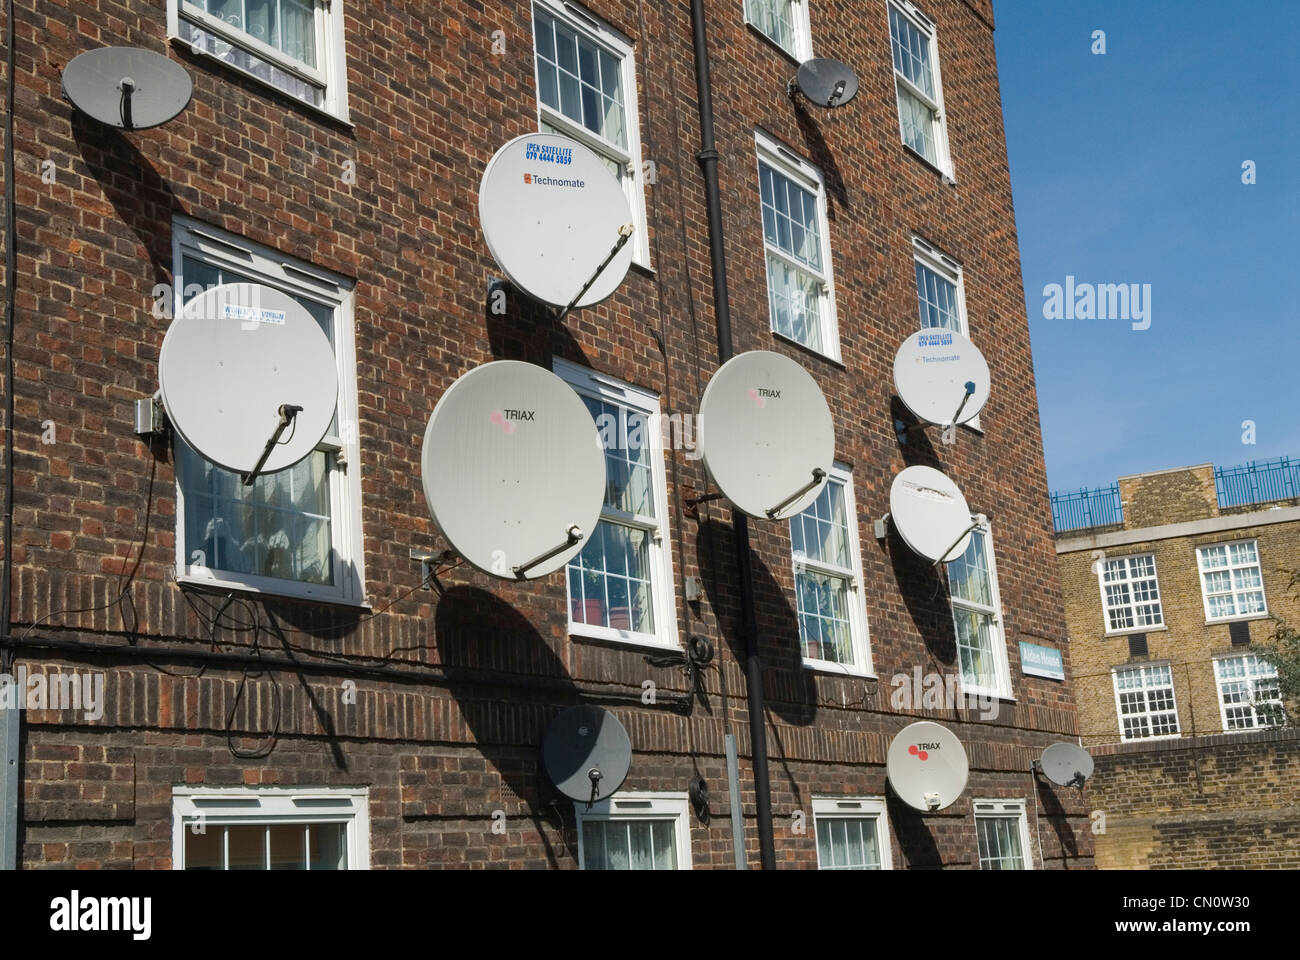 Satellite disk exterior local authority council property London UK HOMER SYKES - Stock Image